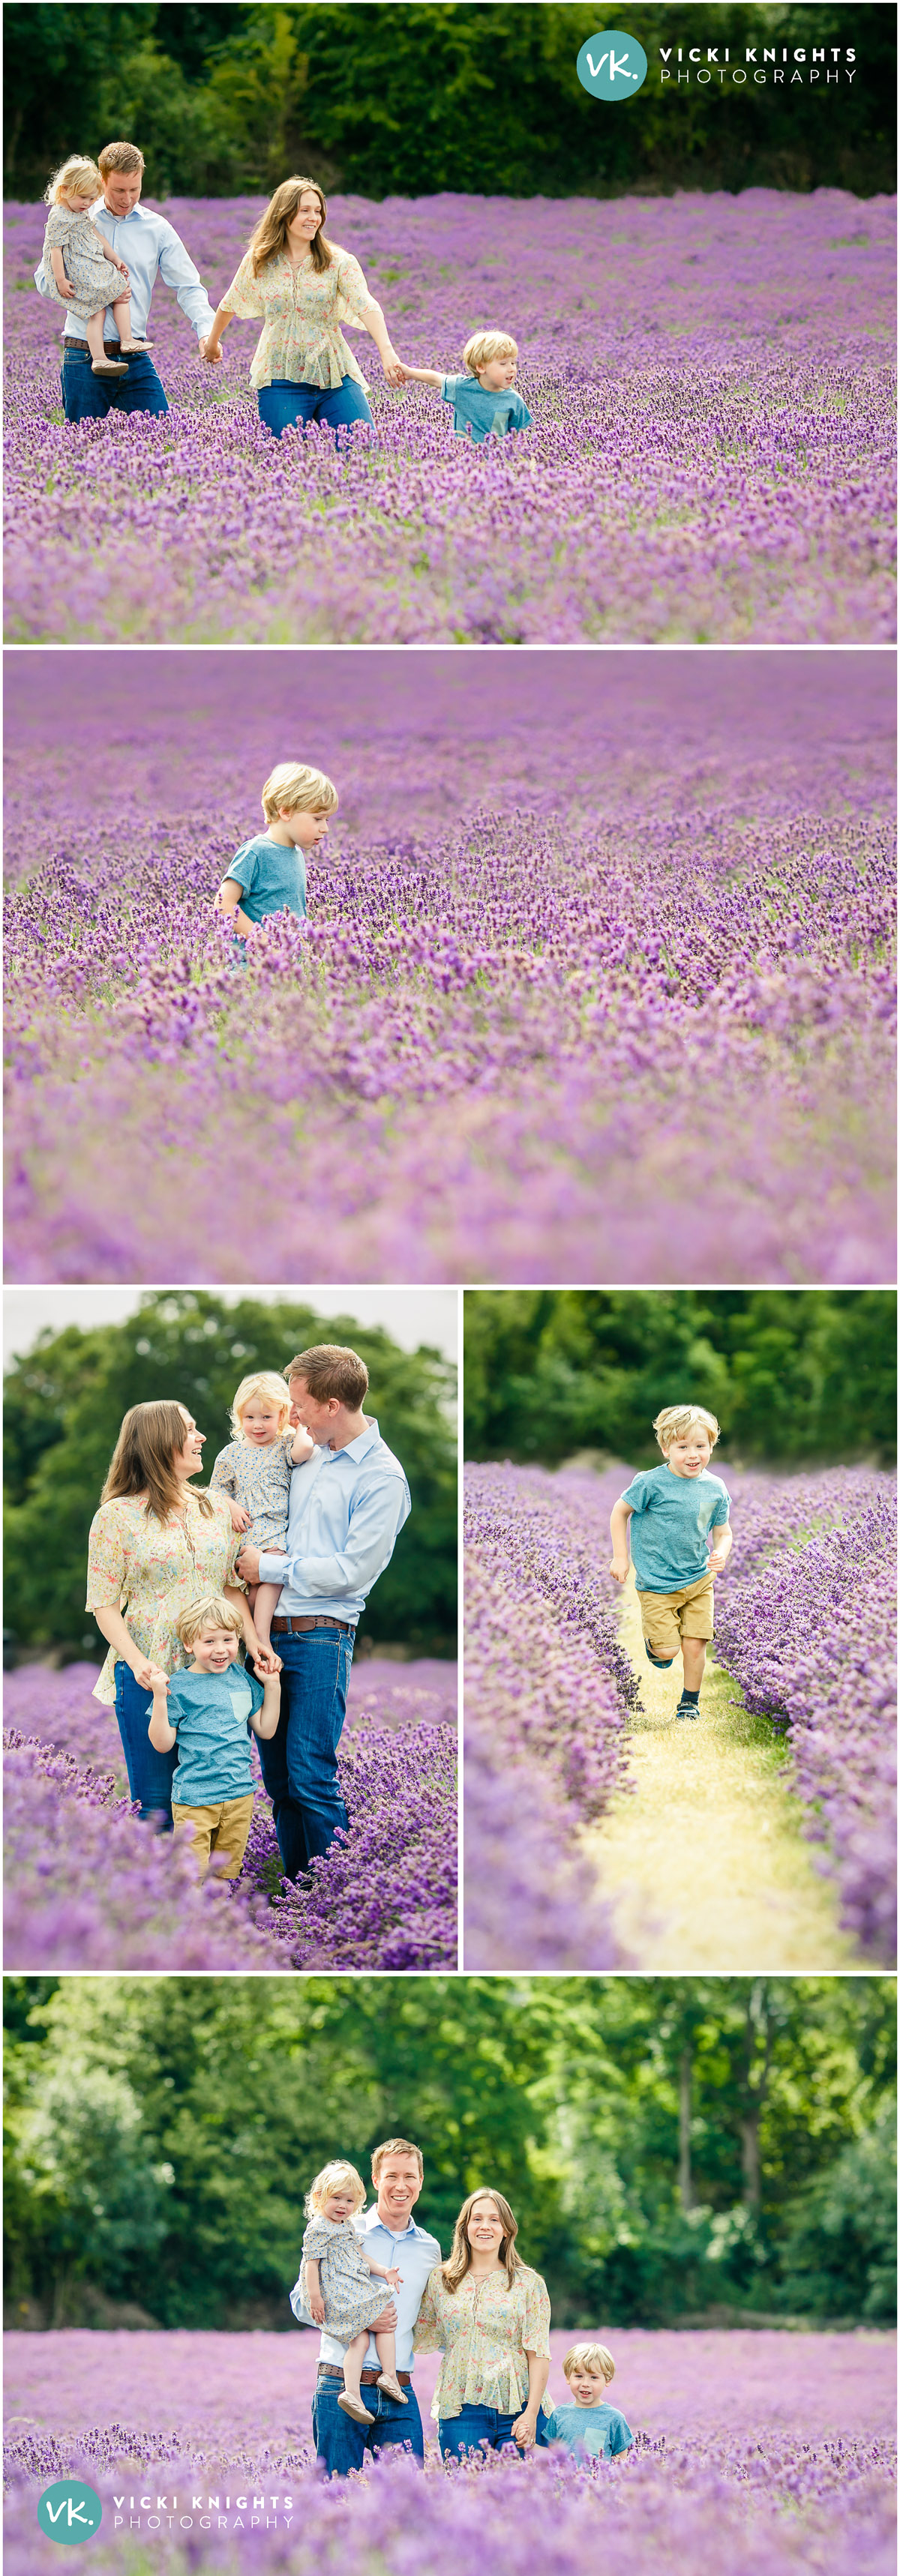 lavender-family-photo-shoot